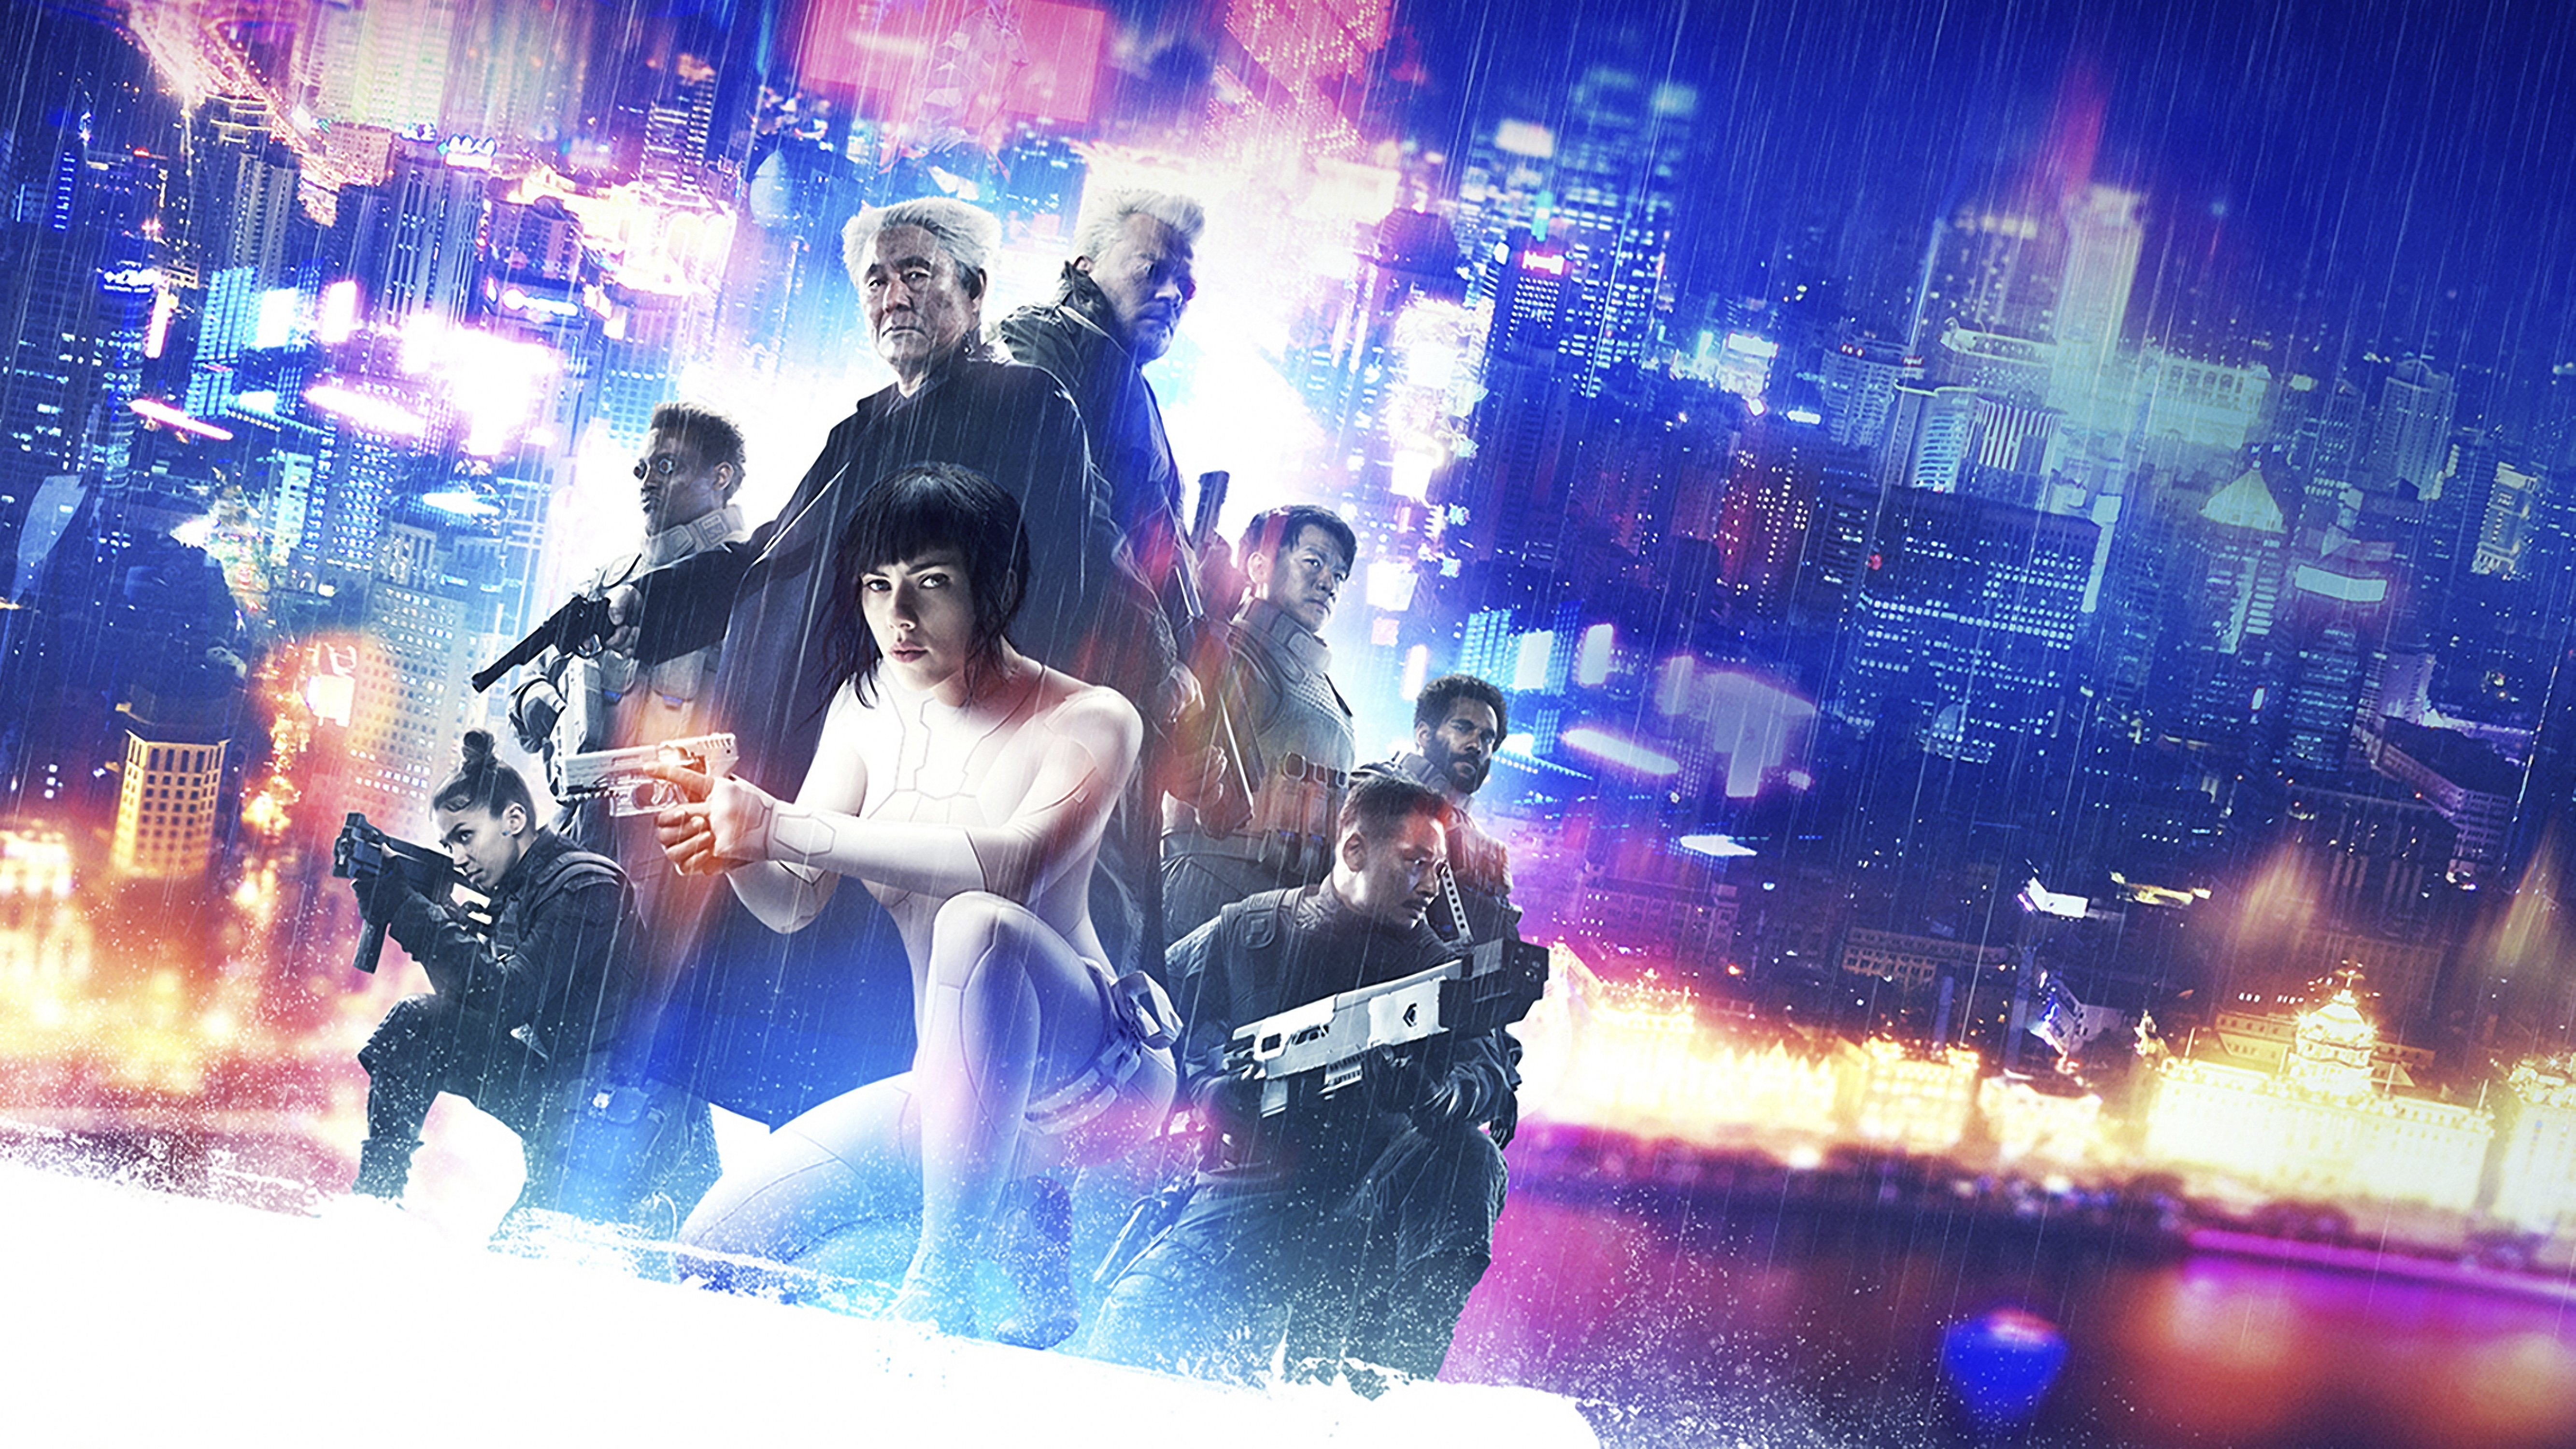 Ghost In The Shell (2017) Wallpapers, Pictures, Images